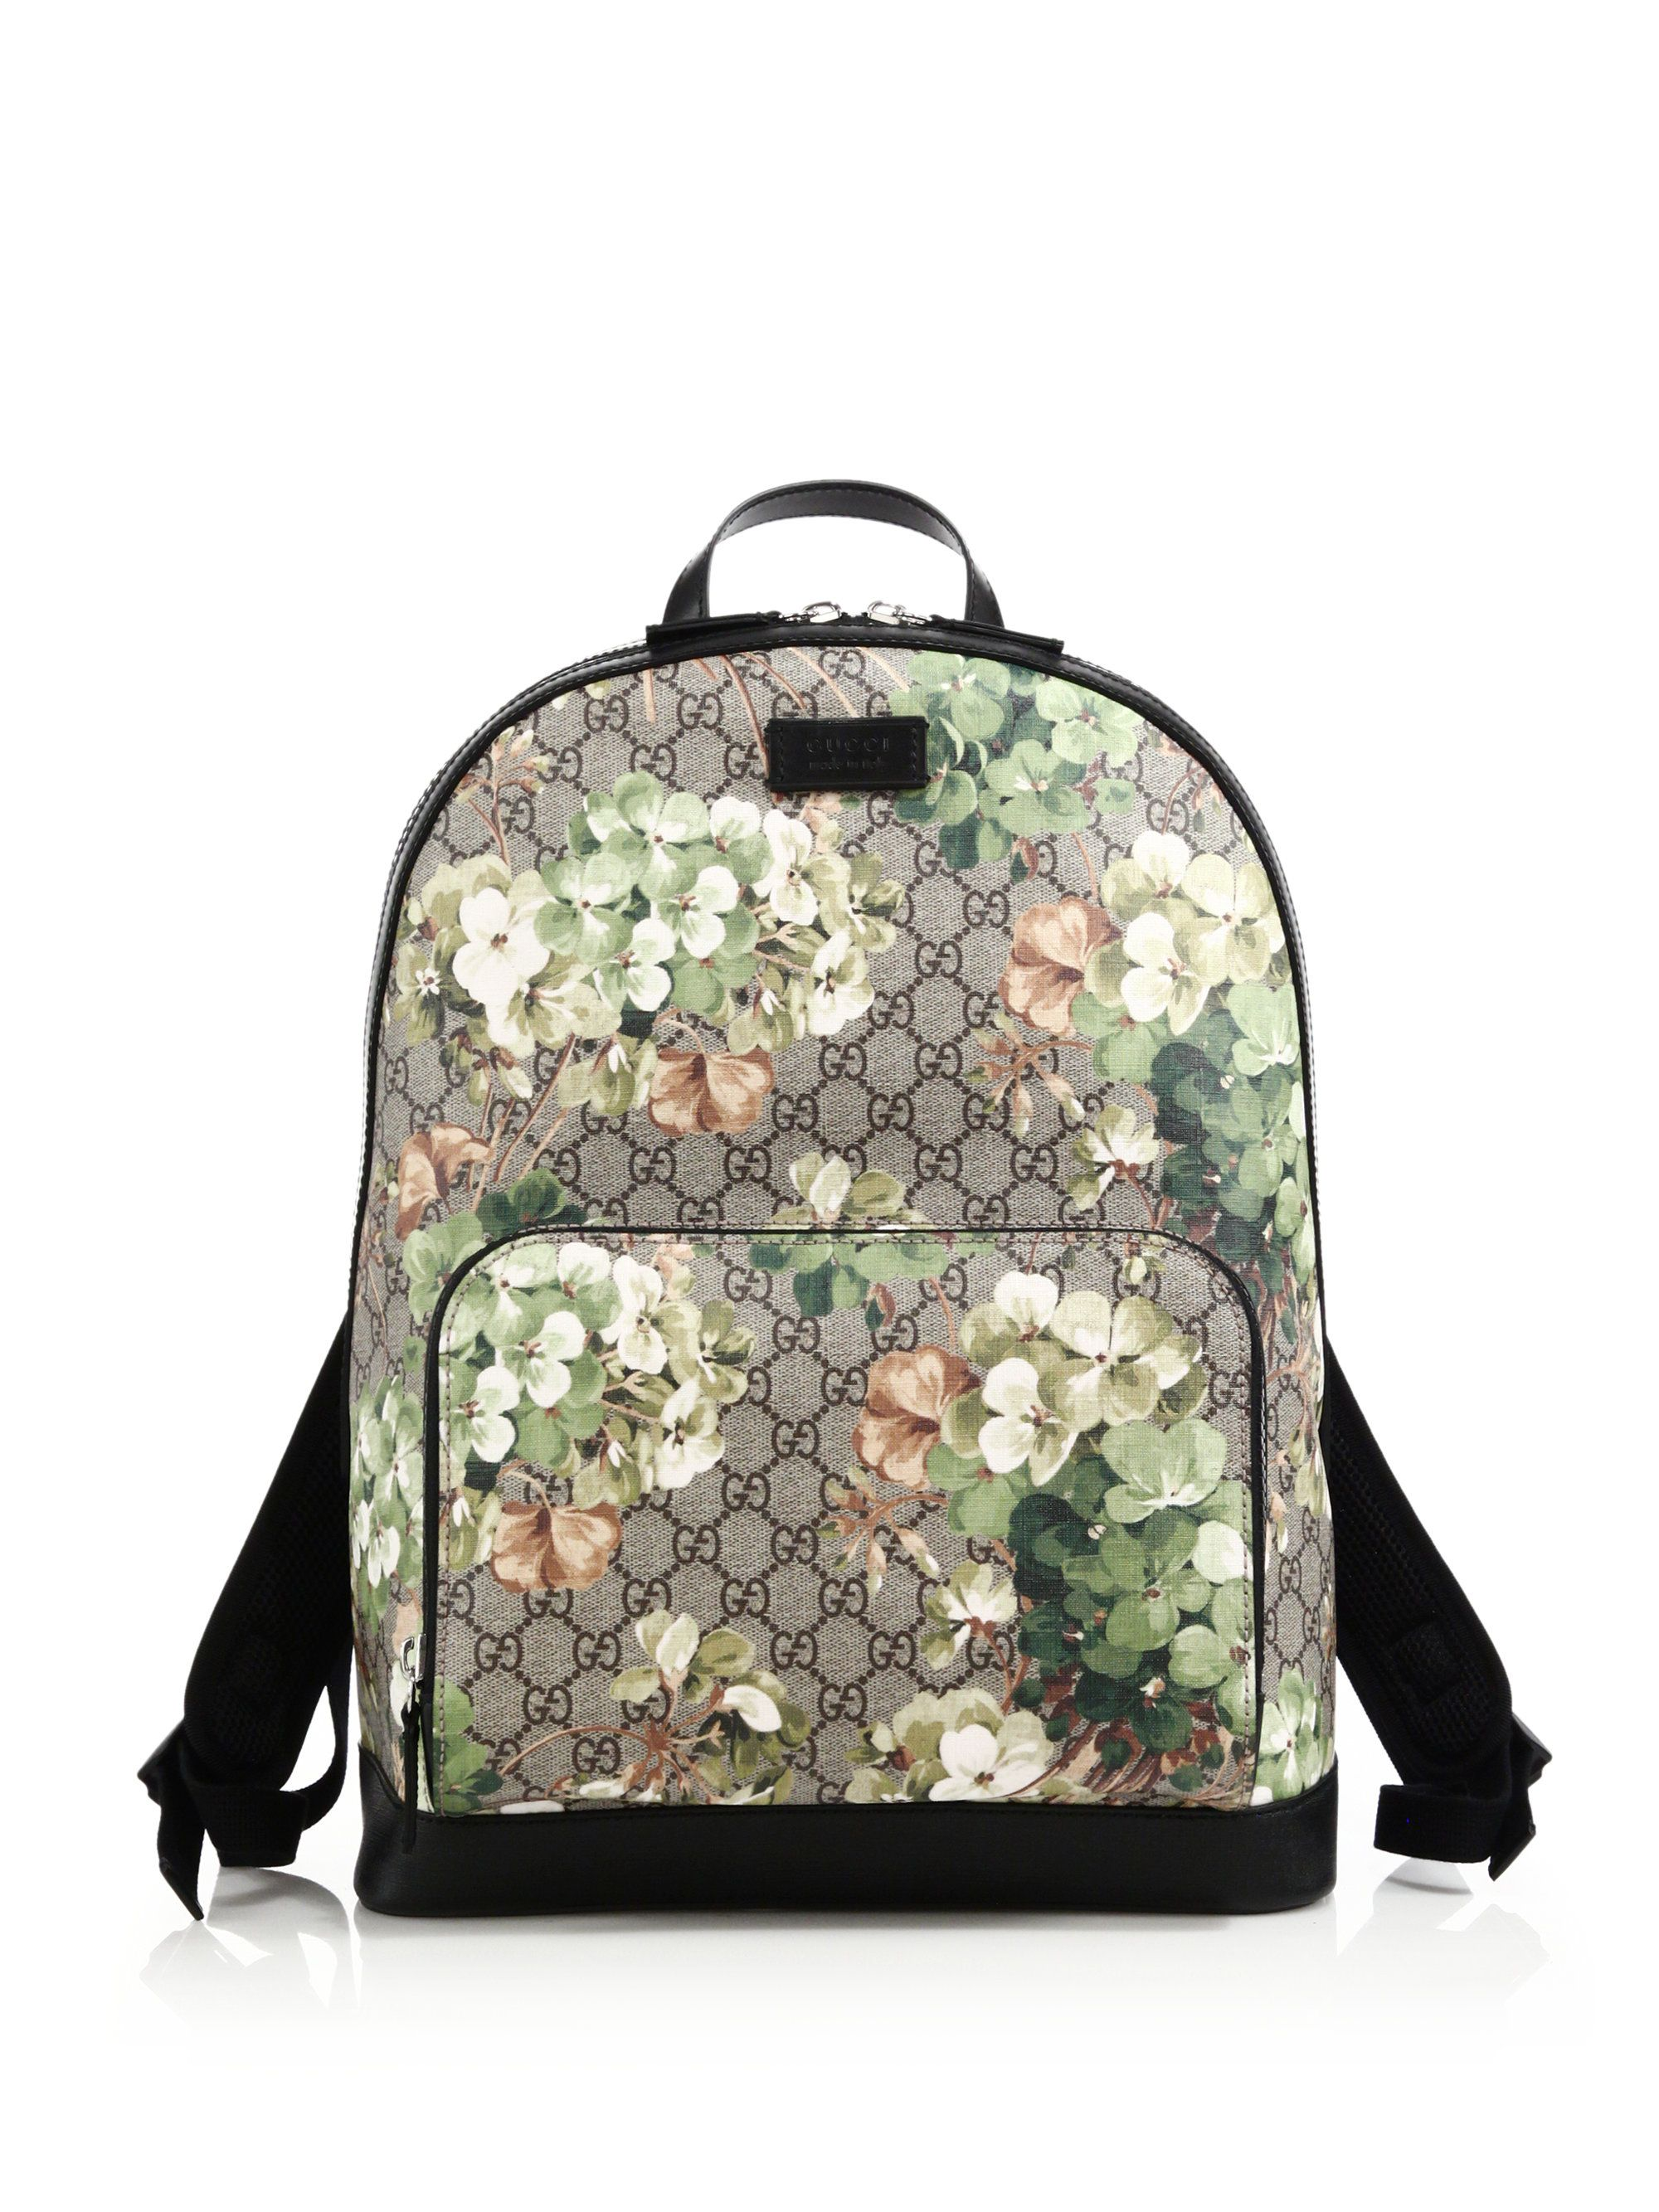 1bc4f2fdbdd Gucci GG Bloom Supreme Canvas Backpack--- is this a good idea or nah  I  just want a nice waterproof designer backpack